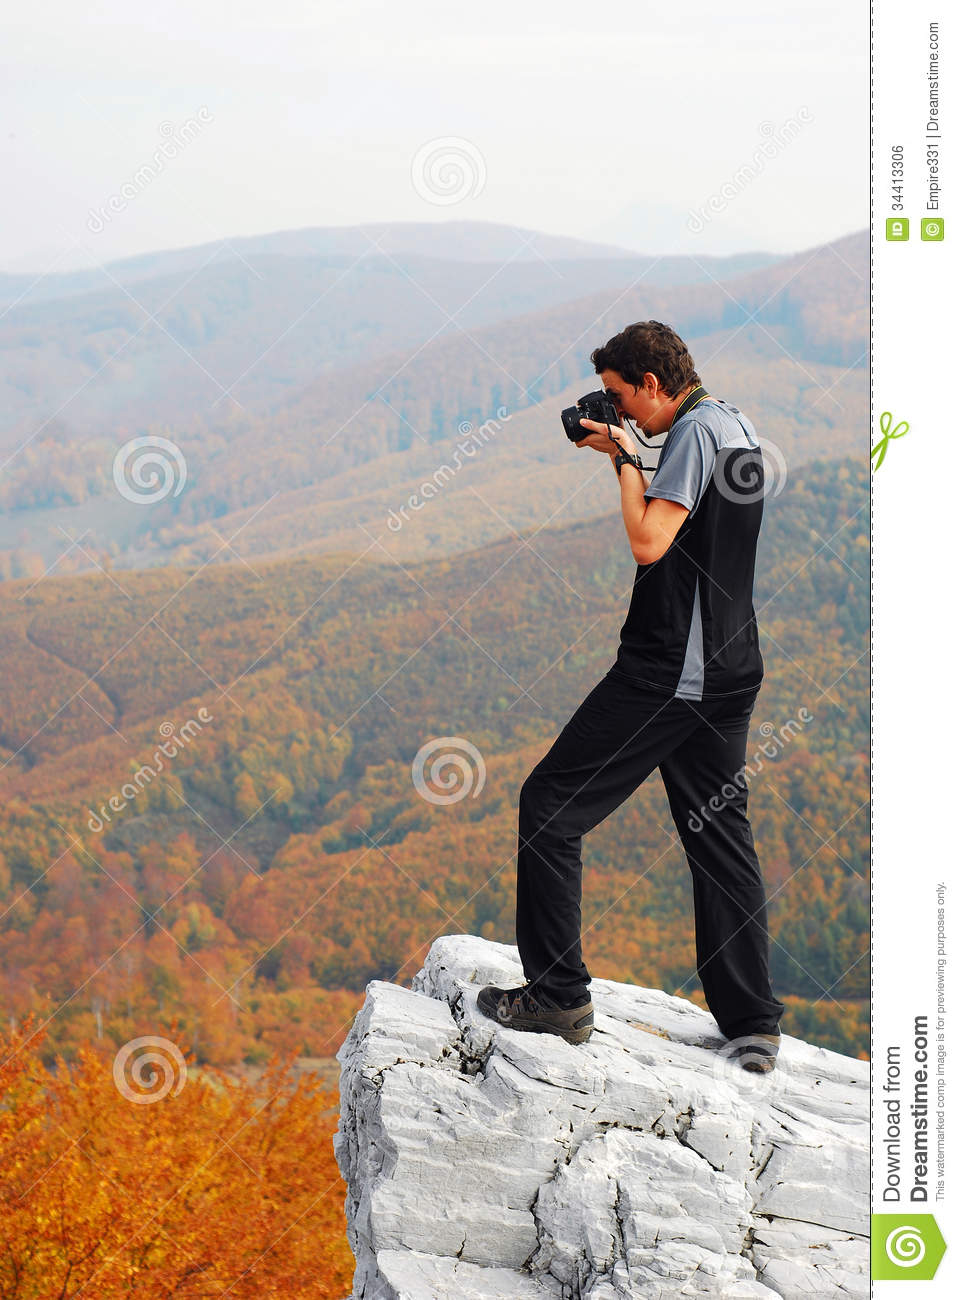 Photographer Royalty Free Stock Image Image 34413306